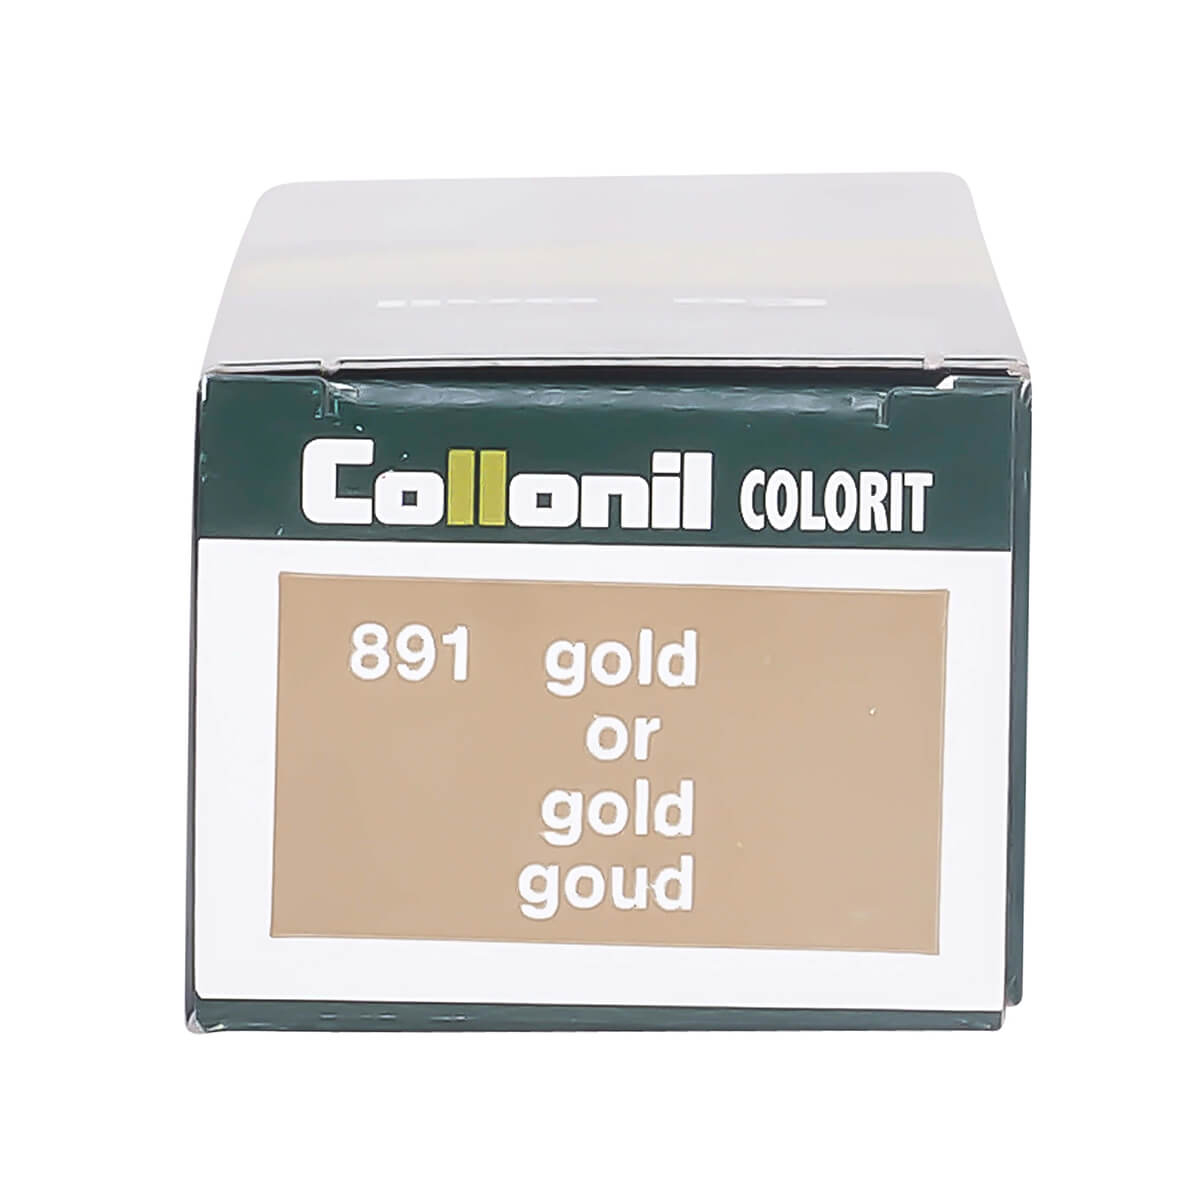 Collonil Creme COLORIT Gold